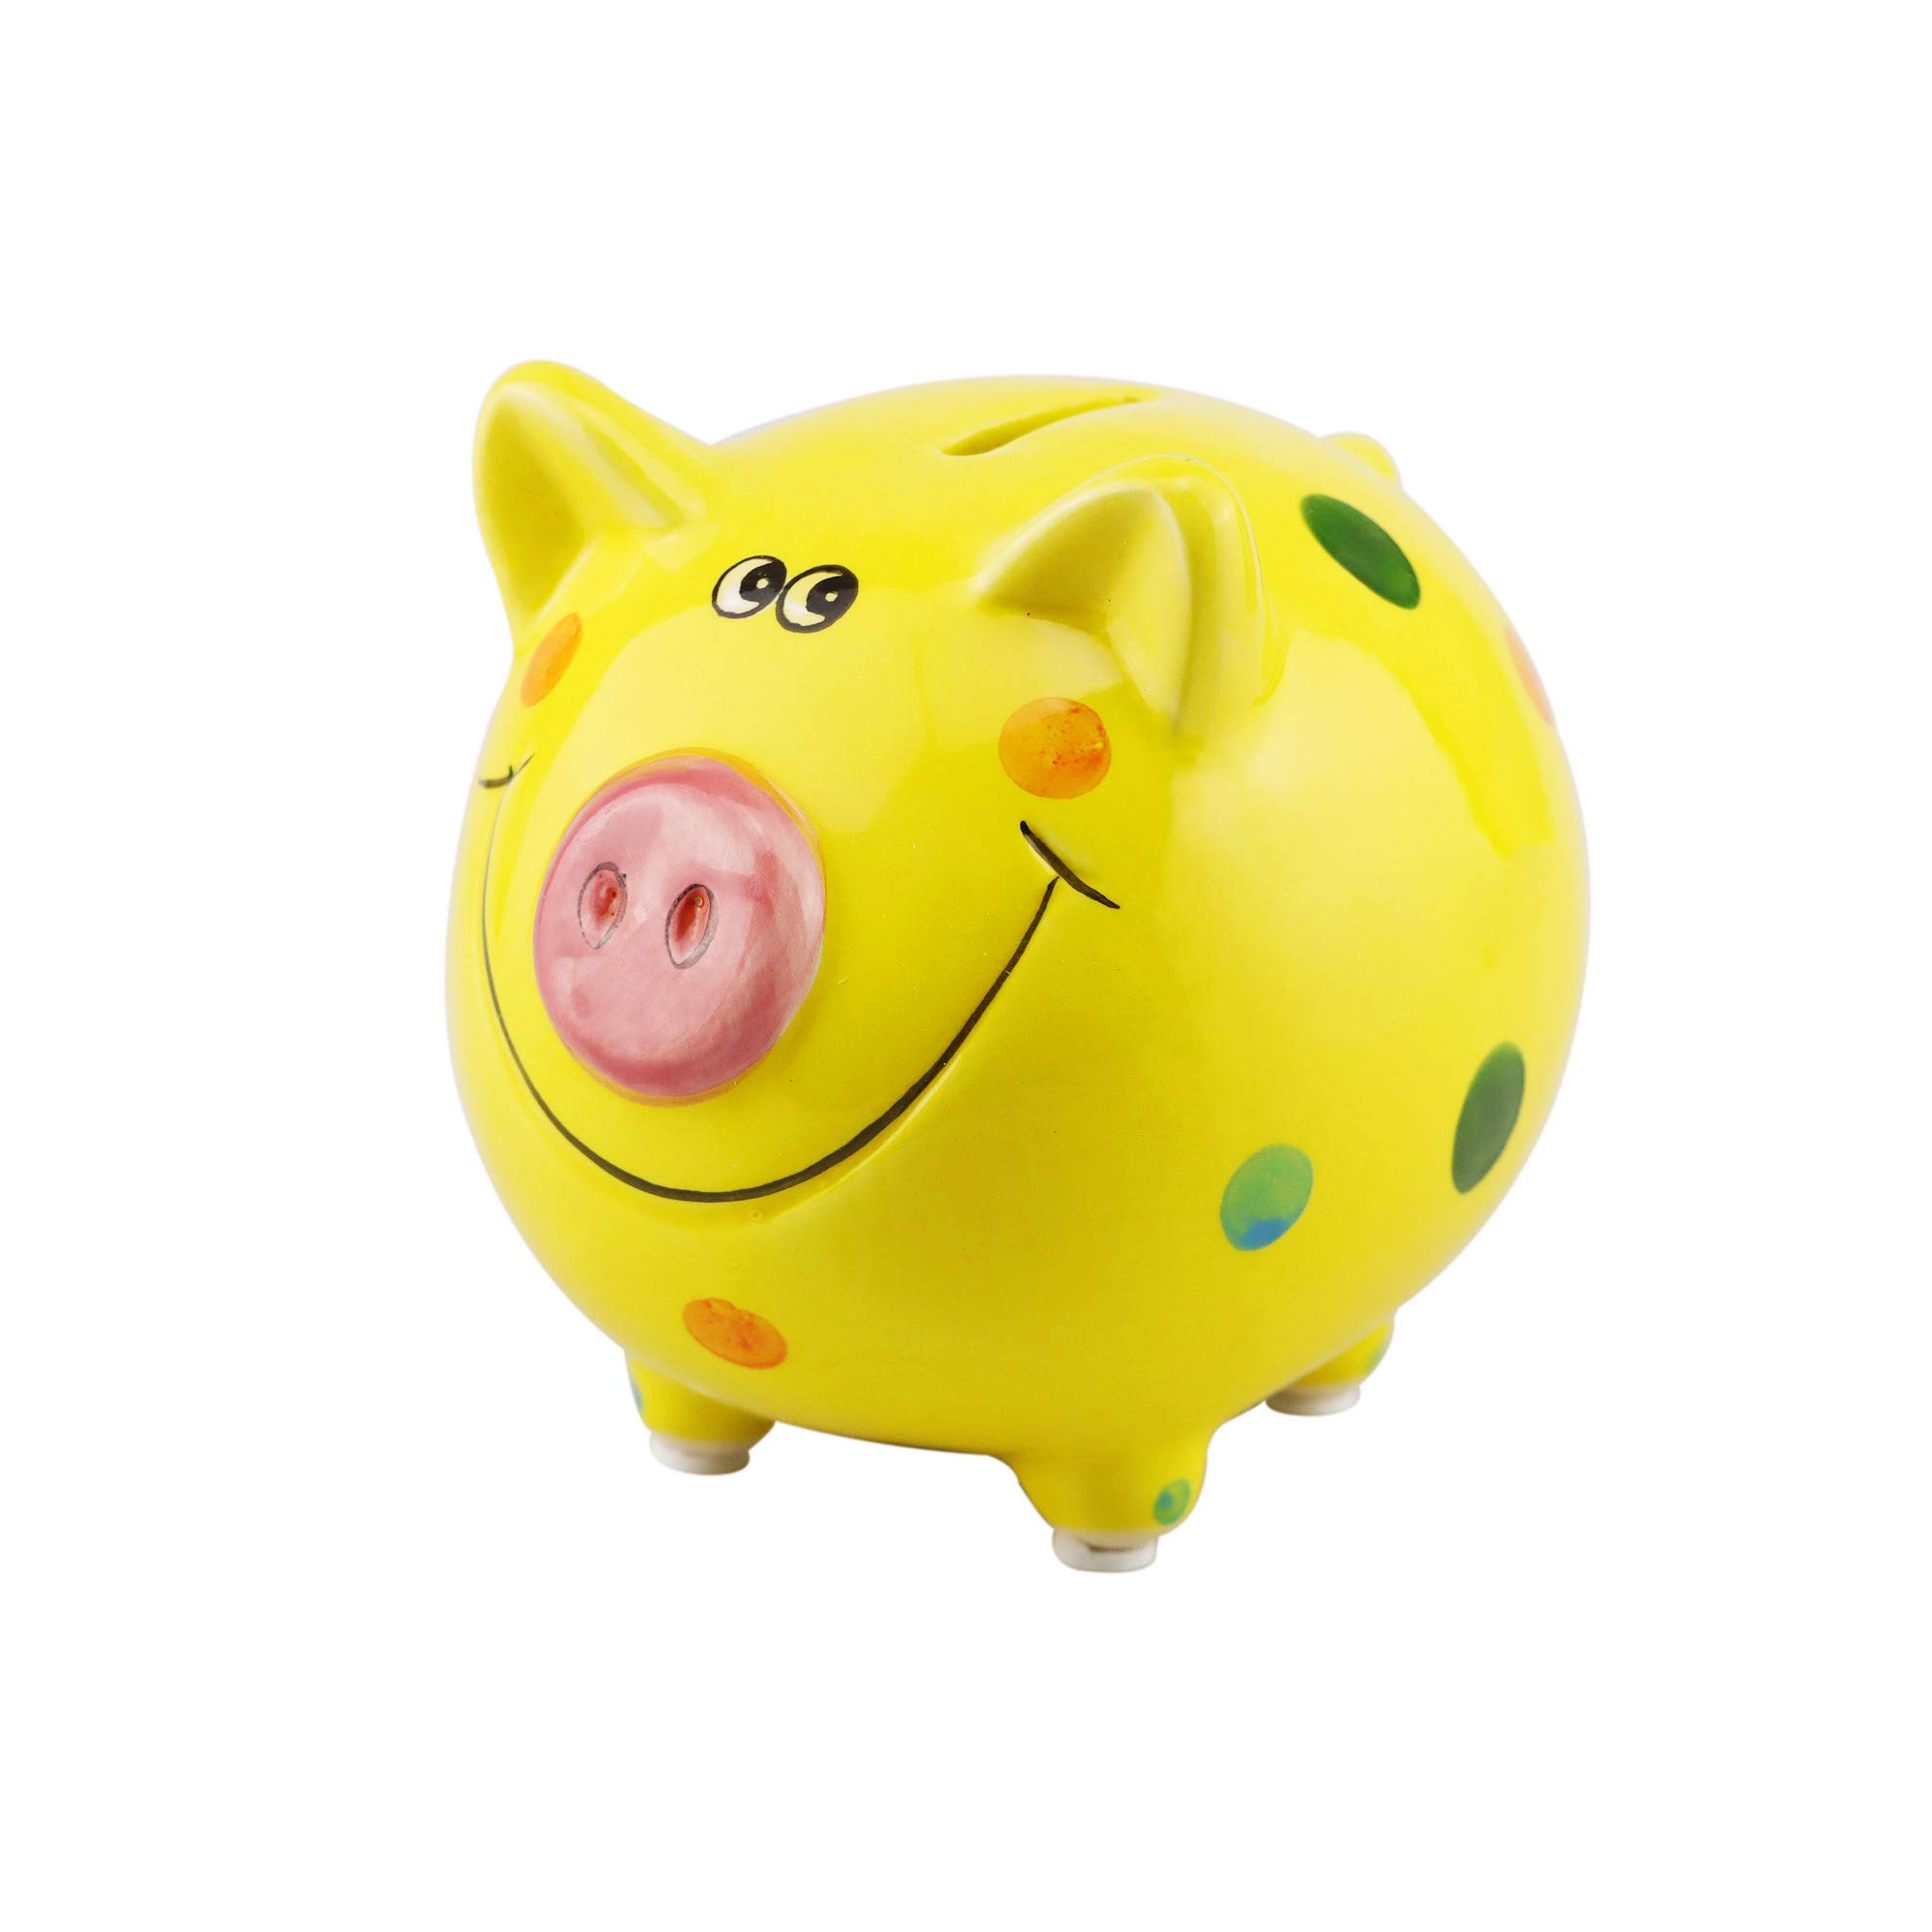 VANVENE Lovely Pig Piggy Bank for Boy and Girls, Coin Bank Money Bank for Kids, Best Birthday for Kids Home Decoration, Favorite Unique Baby Gift Idea (Yellow)